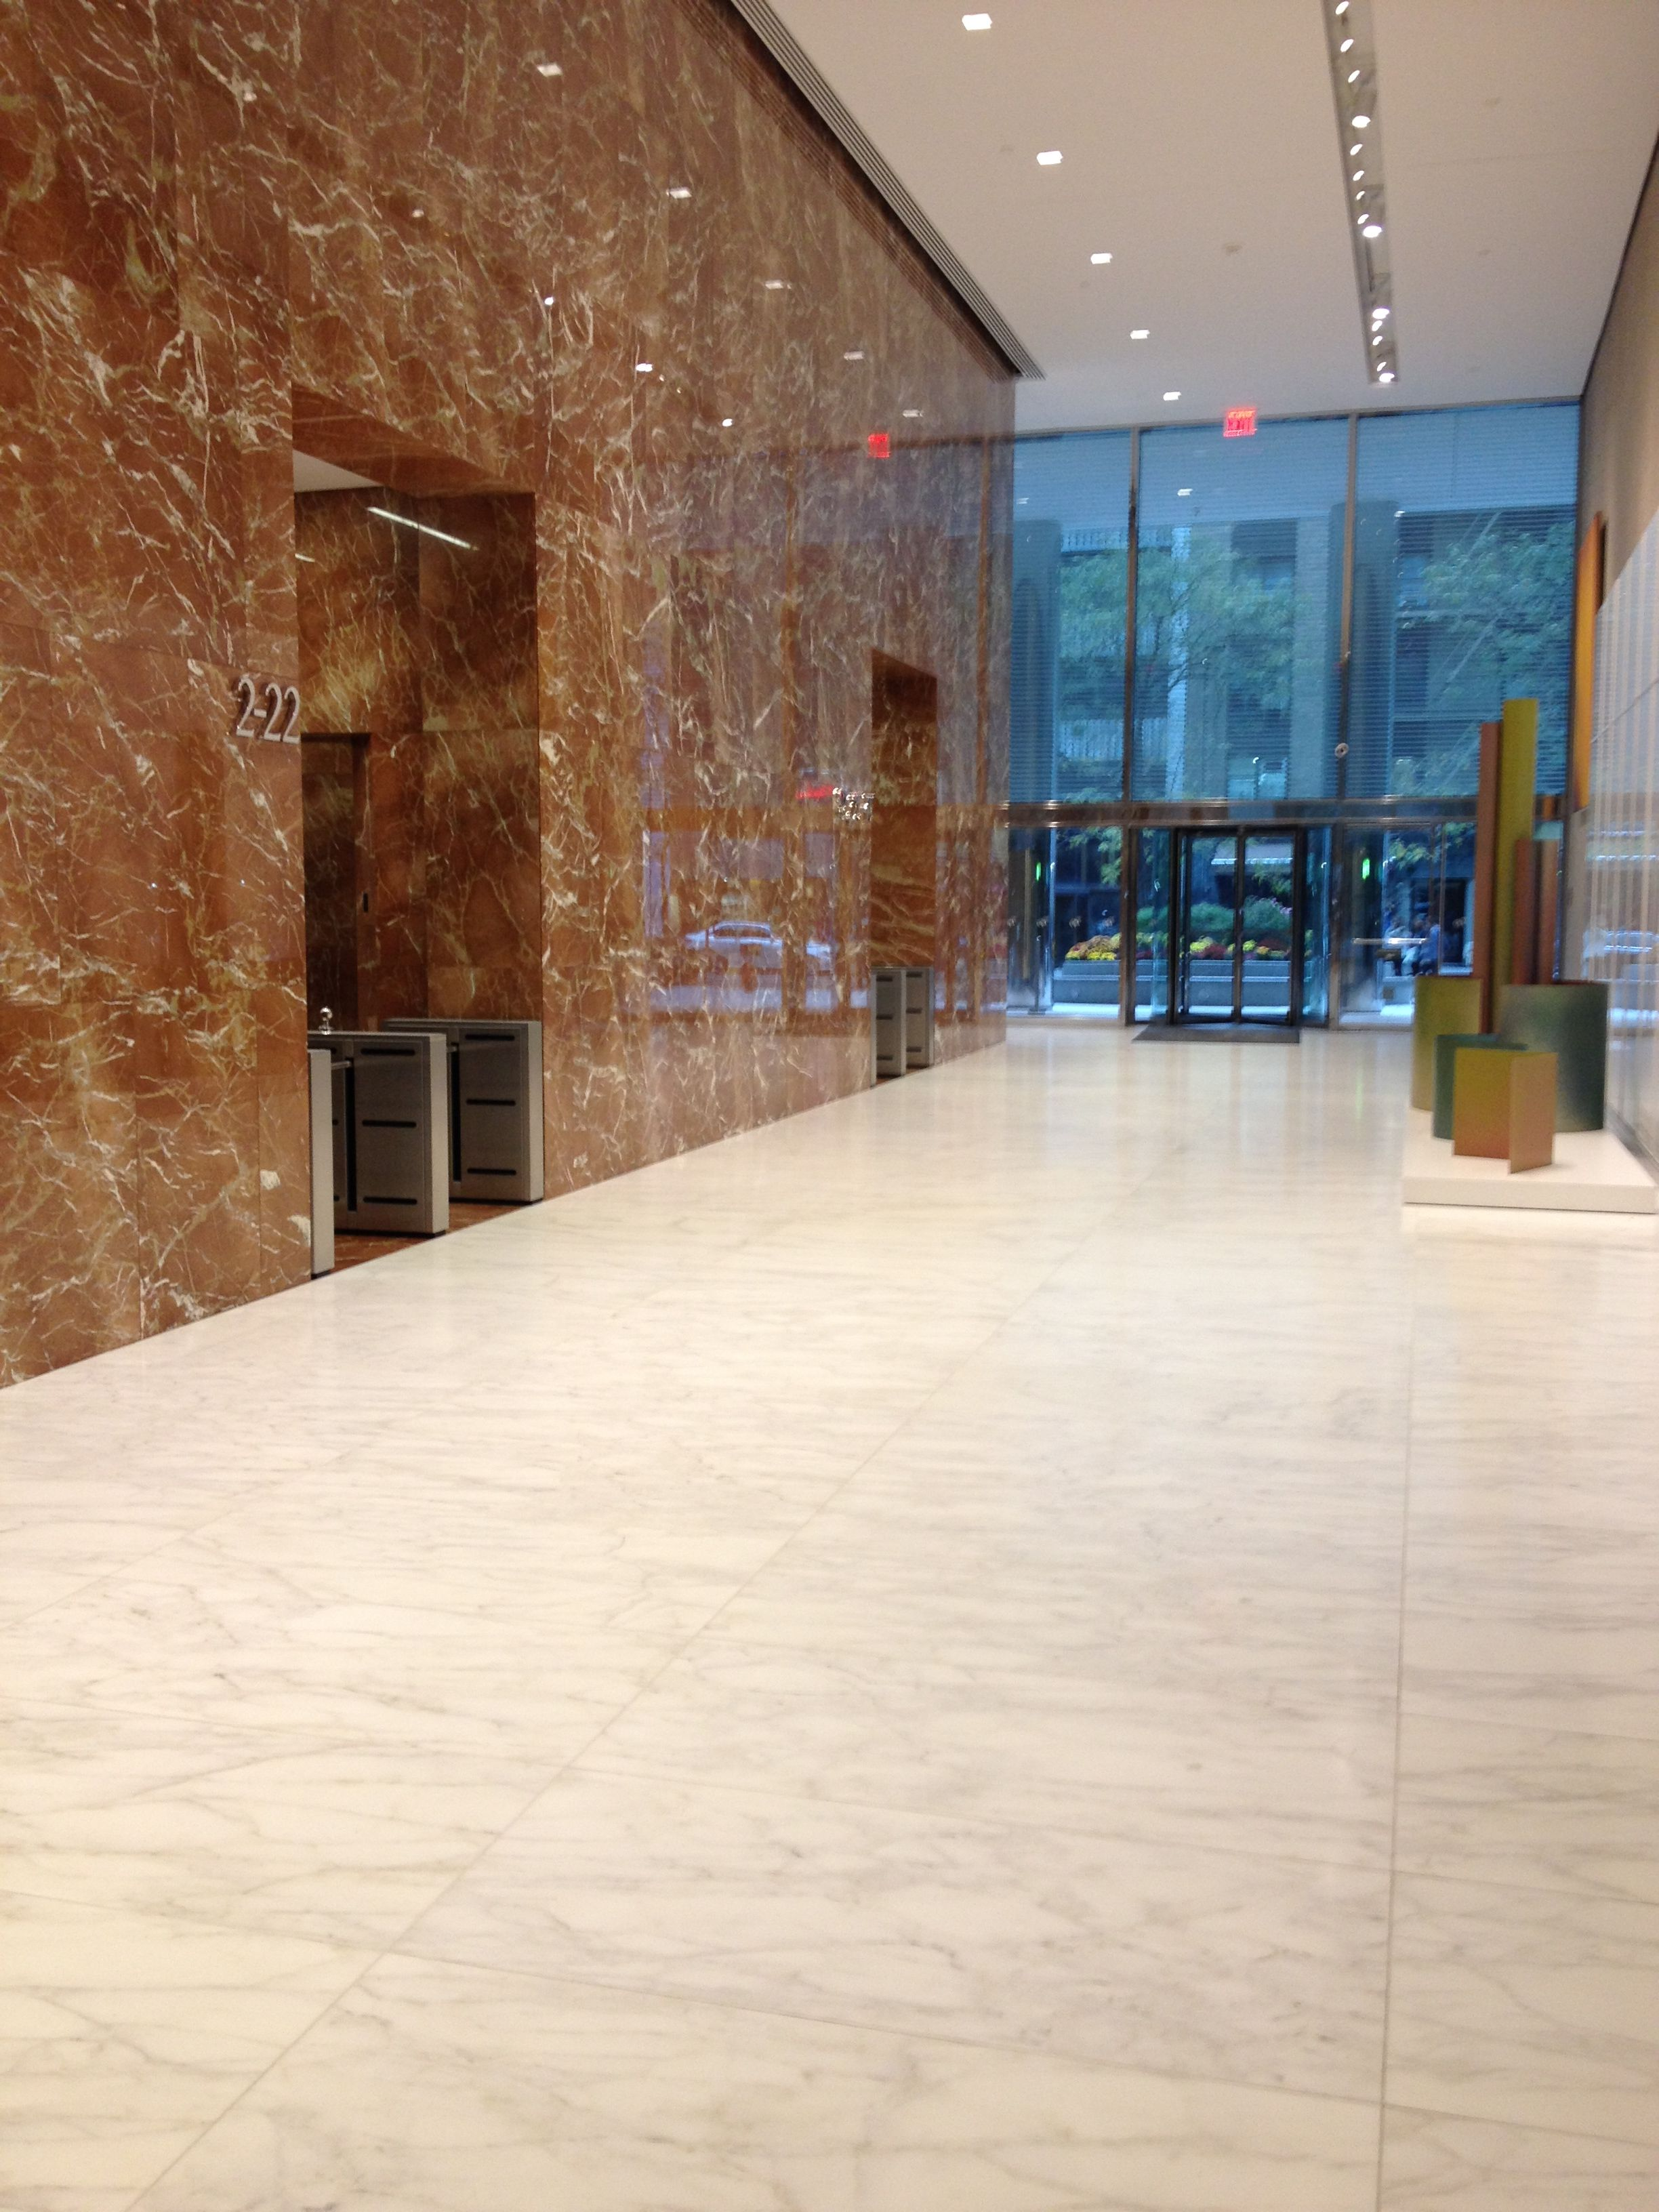 Küche Marmorboden Lobby In Nyc Showcasing Caldia Marble Floor Panels